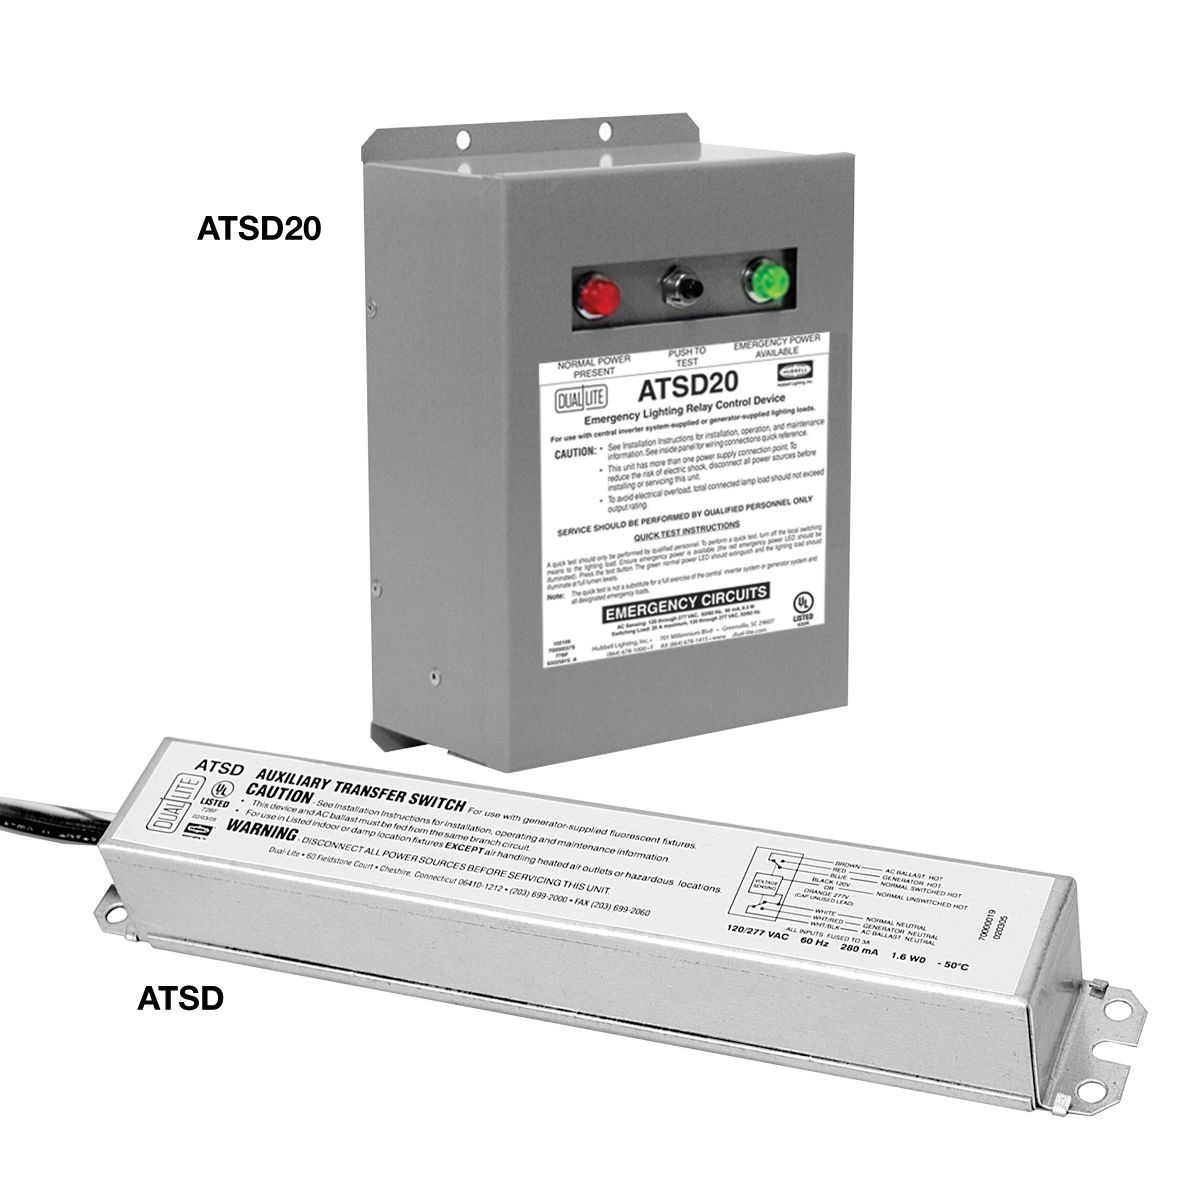 DUAL-LITE ATSD20 AUXILIARY TRANSFER SWITCH, ALLOWS USE OF SWITCHED FLUORESCENT LIGHTINGFOR EMERGENCY PURPOSES. MAX CAPACITY 3A. 120/277VAC.